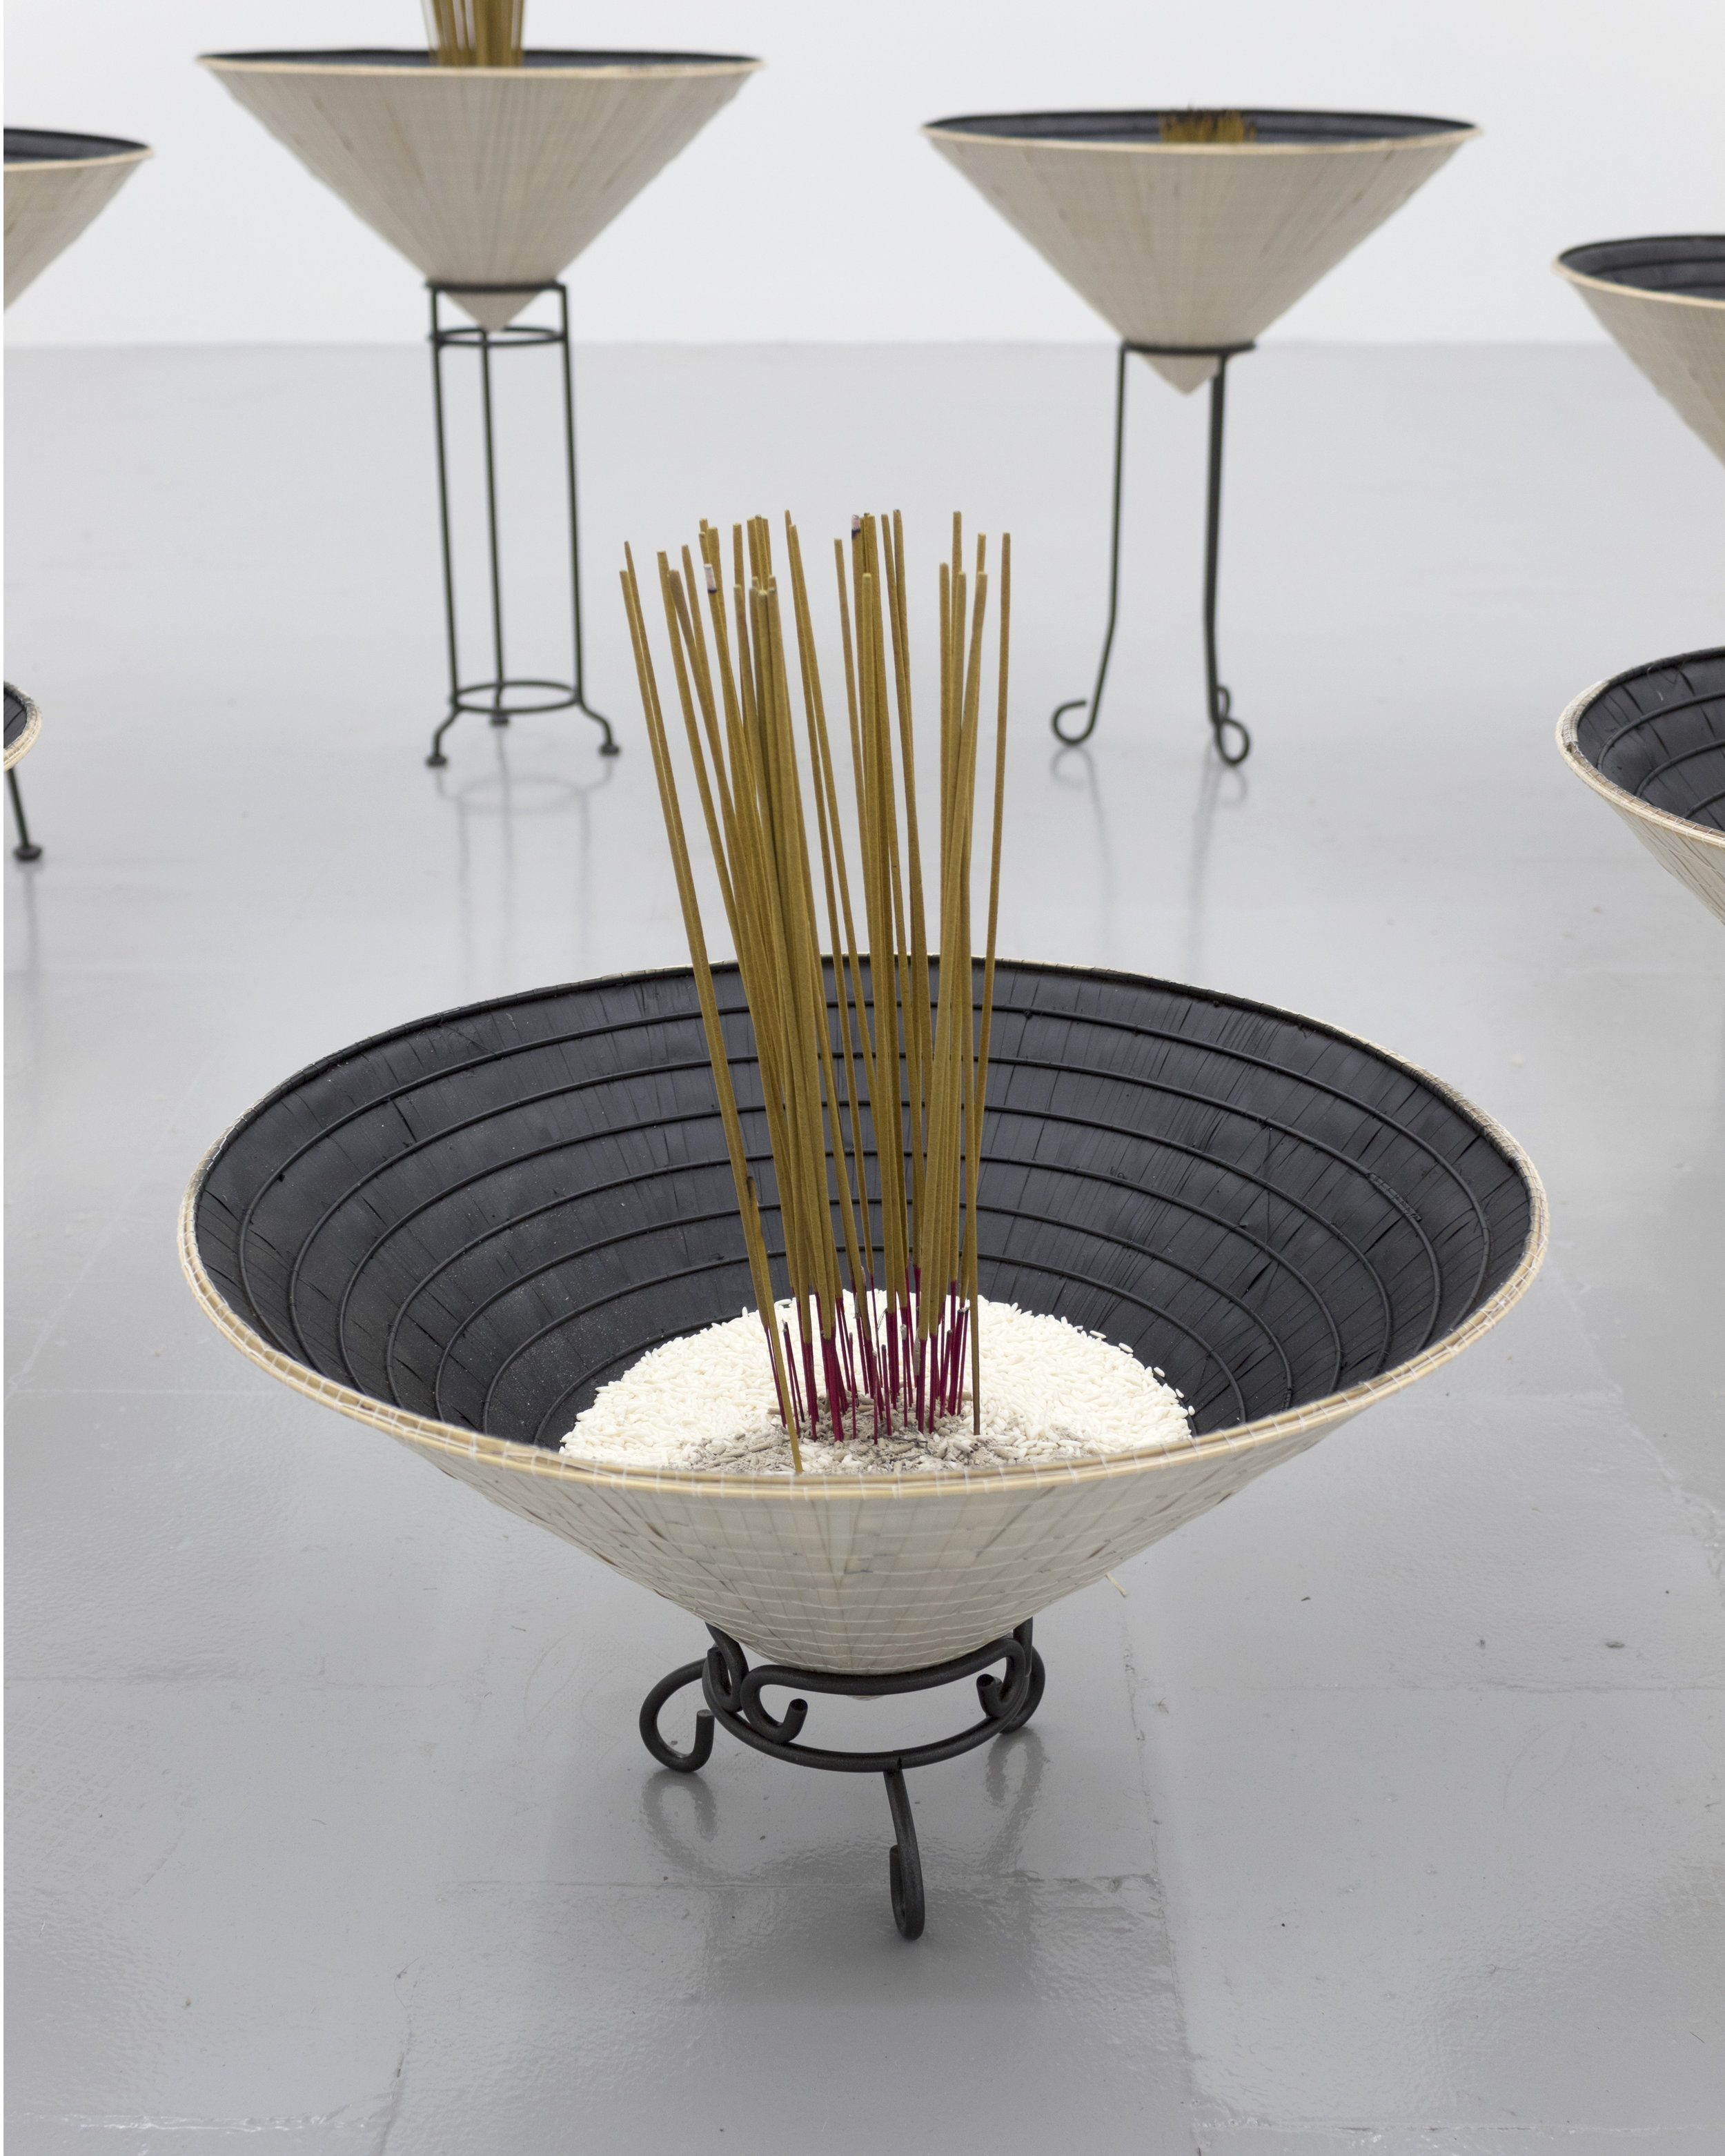 Millian Giang Lien Pham,  Reforge: 9 Phases (One),  2019. Conical hat, sweet rice, incense, metal stand